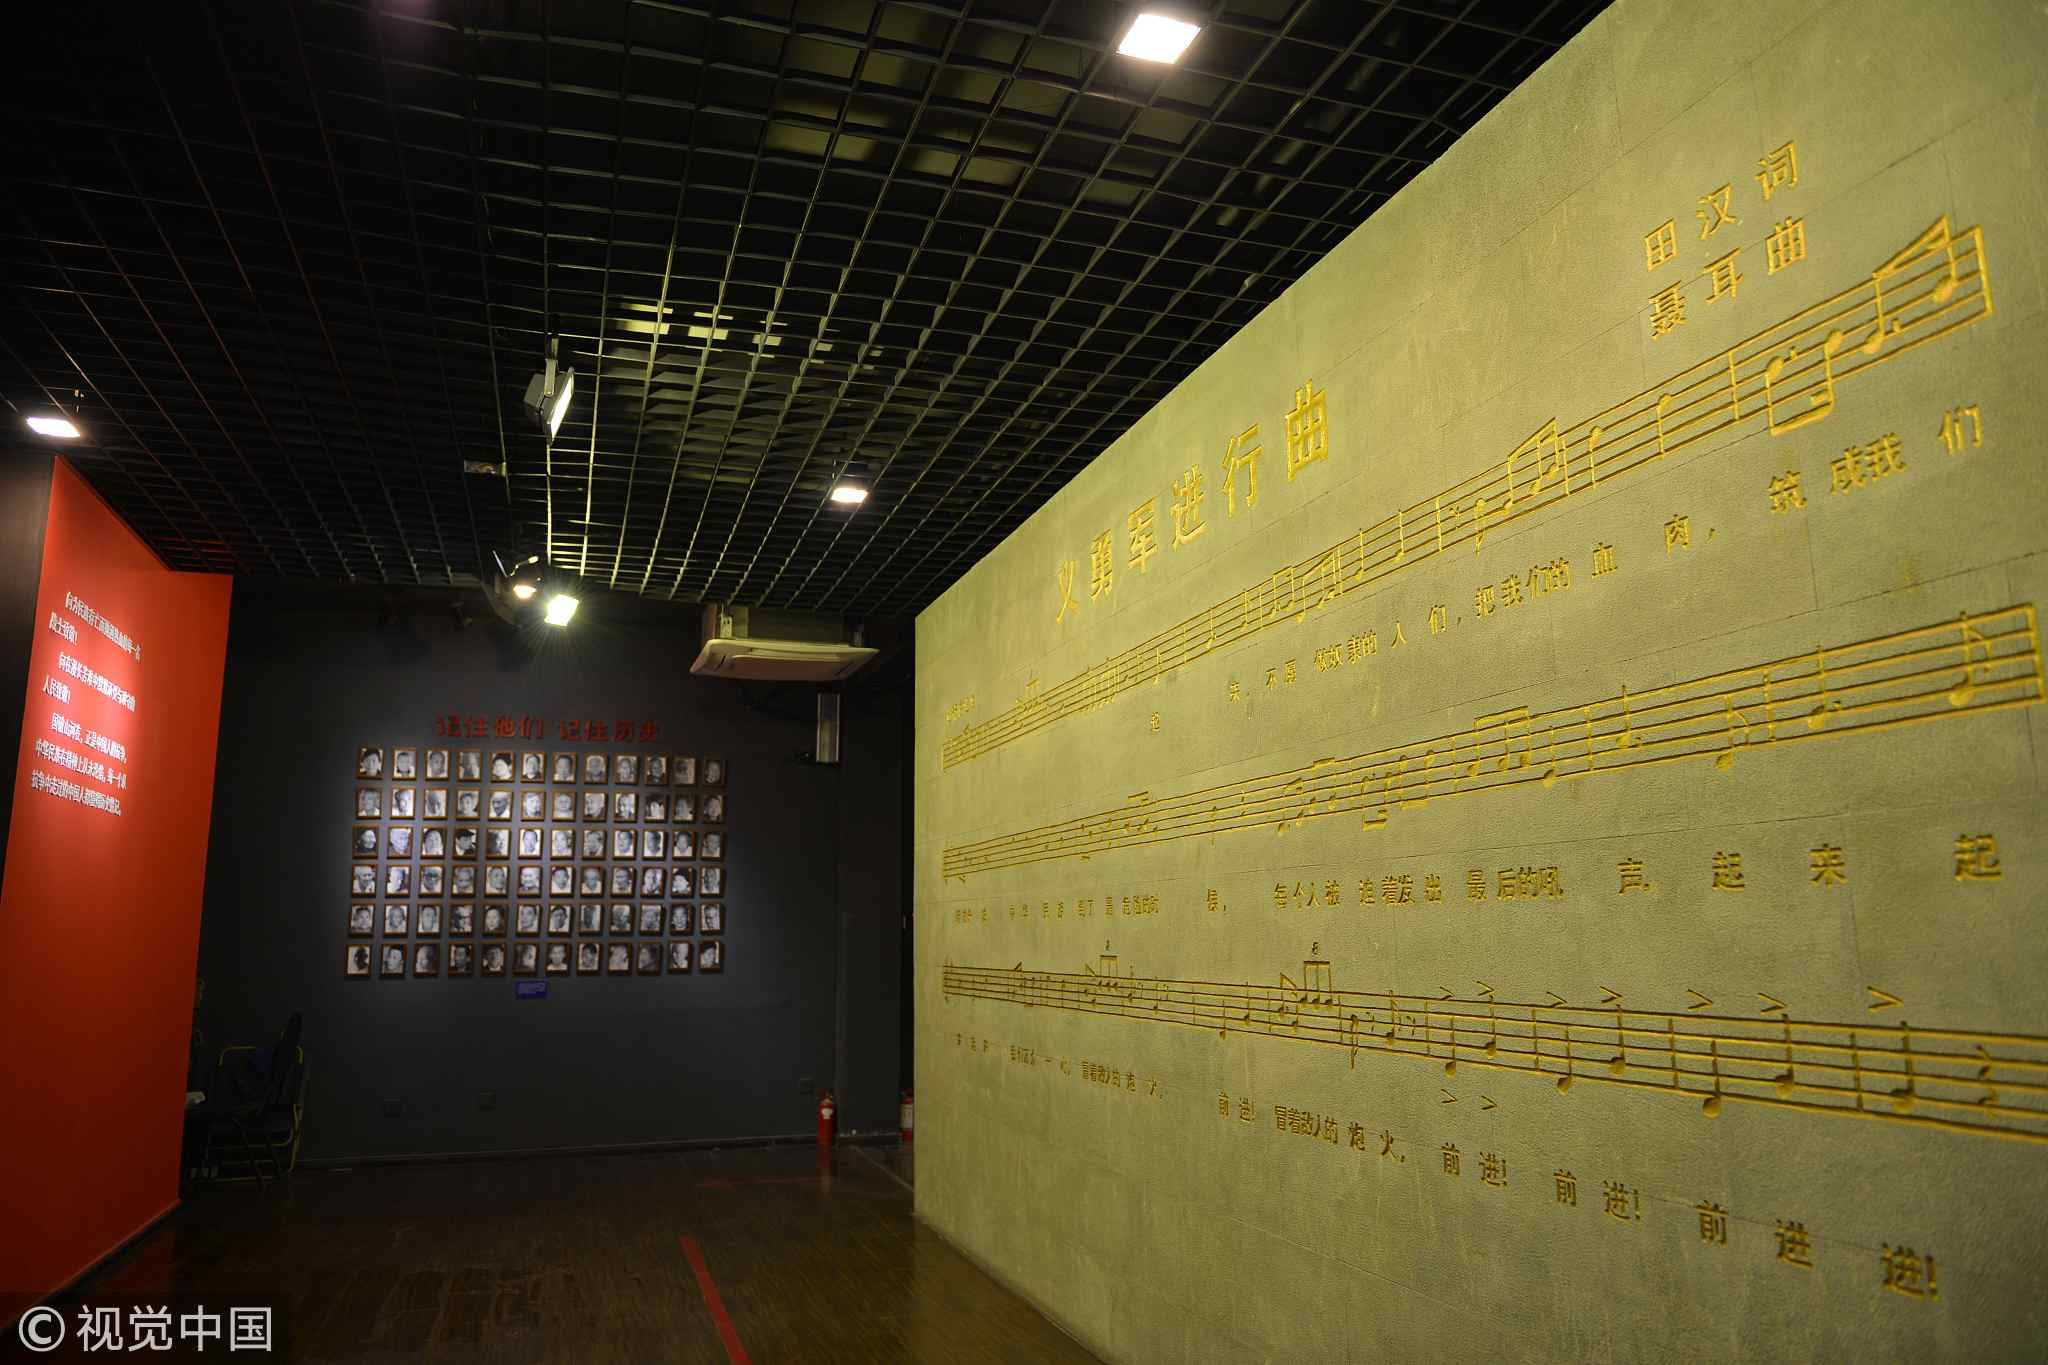 Exhibits underline China's contribution to world peace 8 decades ago